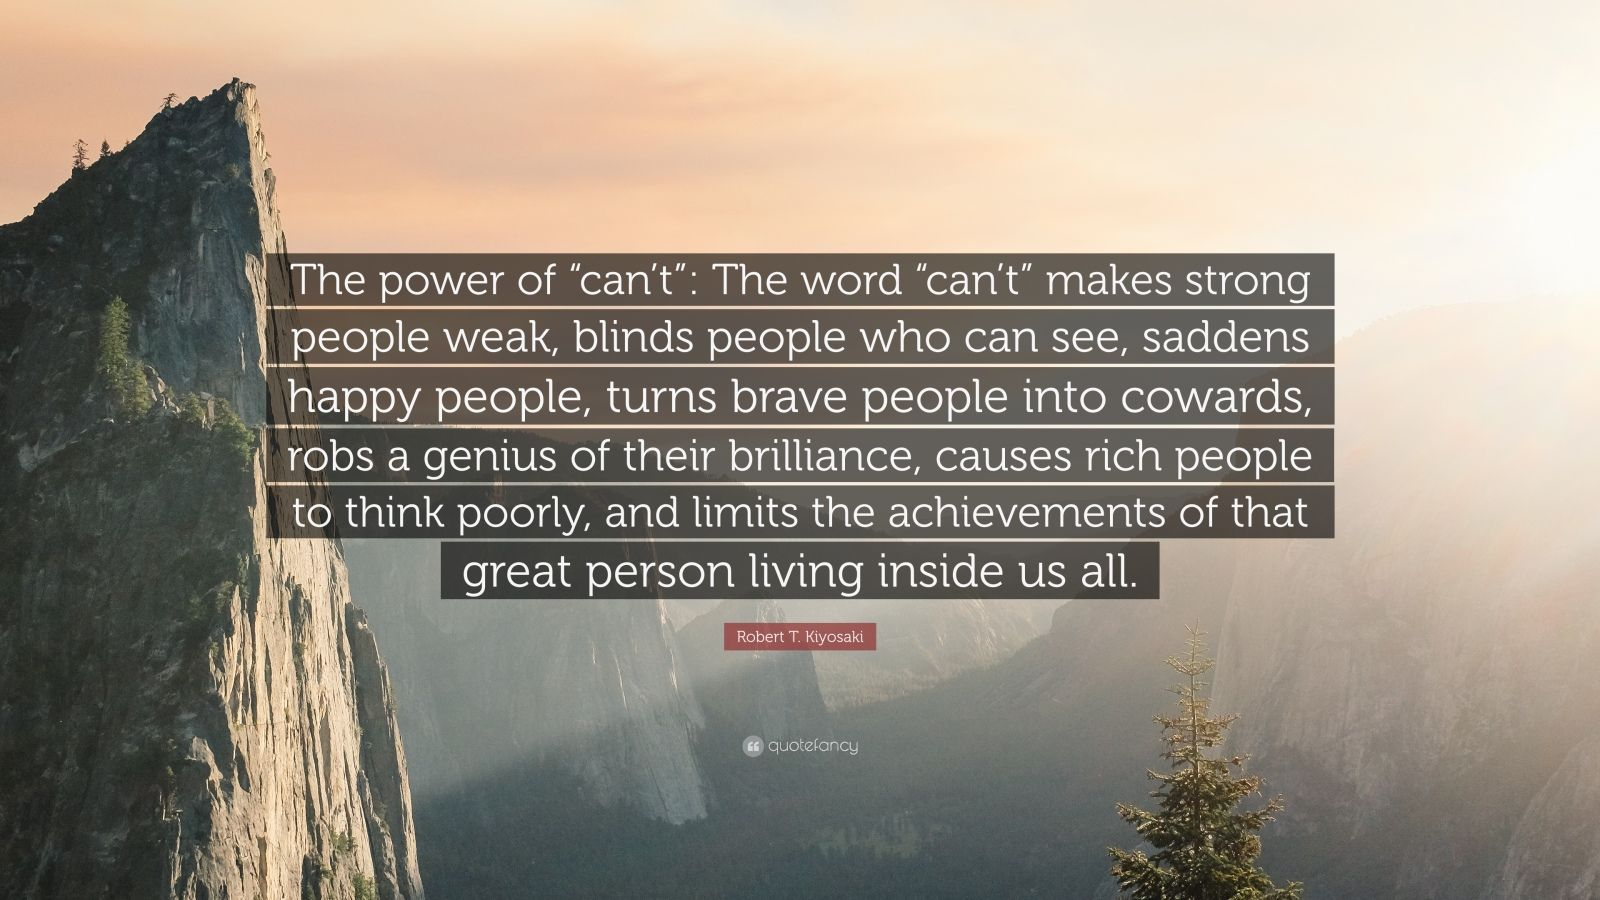 """Robert T. Kiyosaki Quote: """"The power of """"can't"""": The word """"can't"""" makes strong people weak, blinds people who can see, saddens happy people, turns brave people into cowards, robs a genius of their brilliance, causes rich people to think poorly, and limits the achievements of that great person living inside us all."""""""